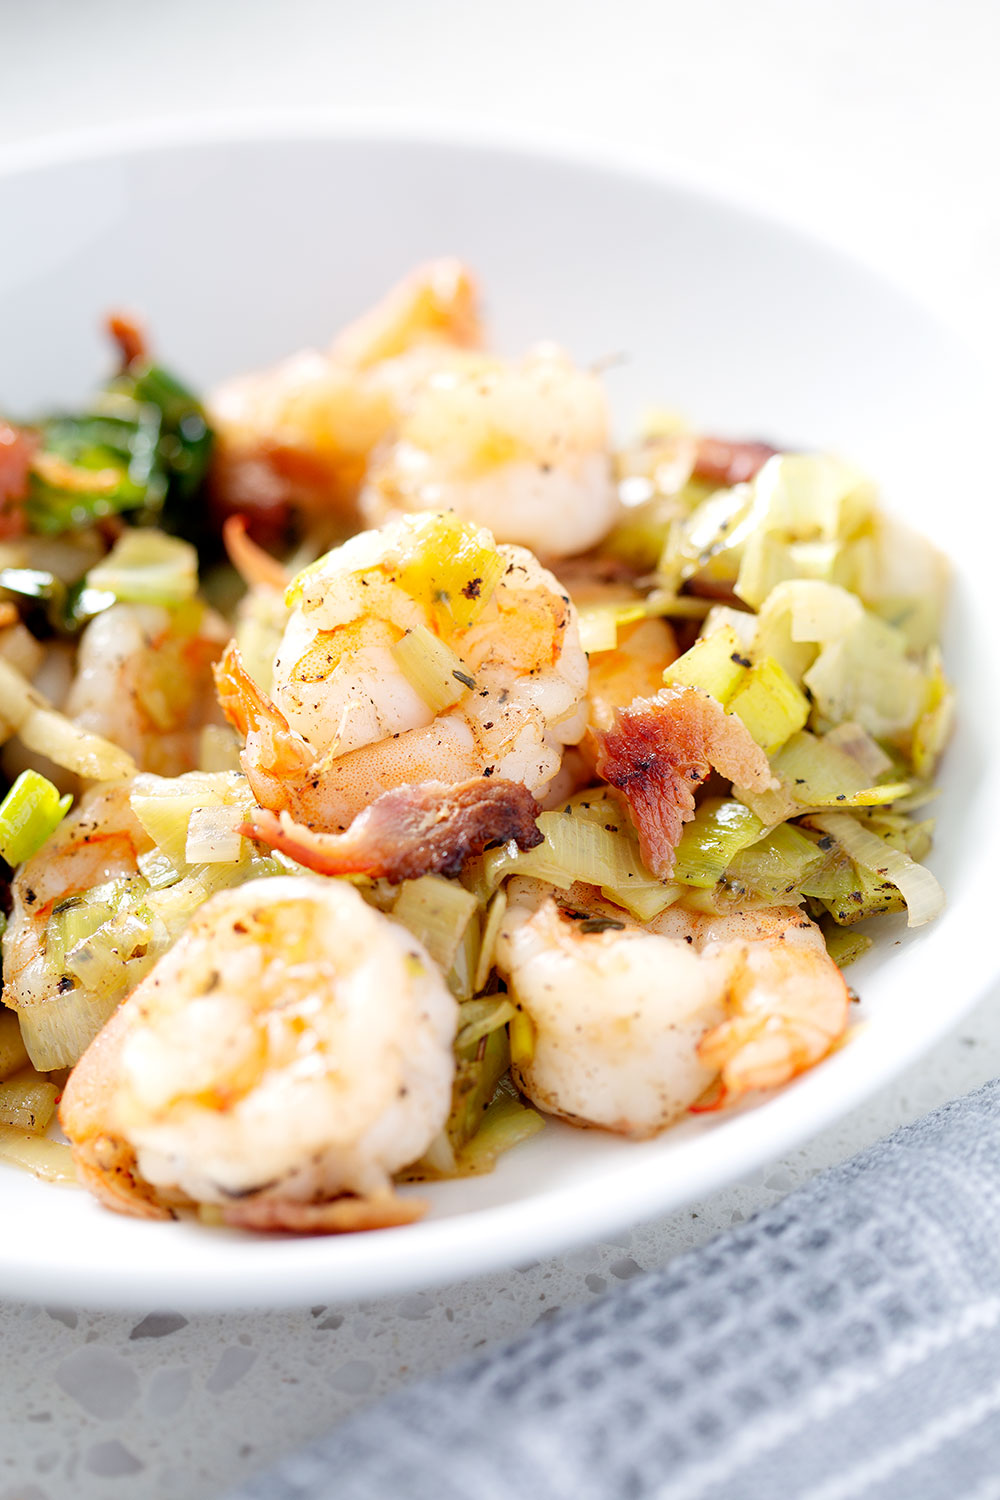 shrimp and onions on white bowl with napkin